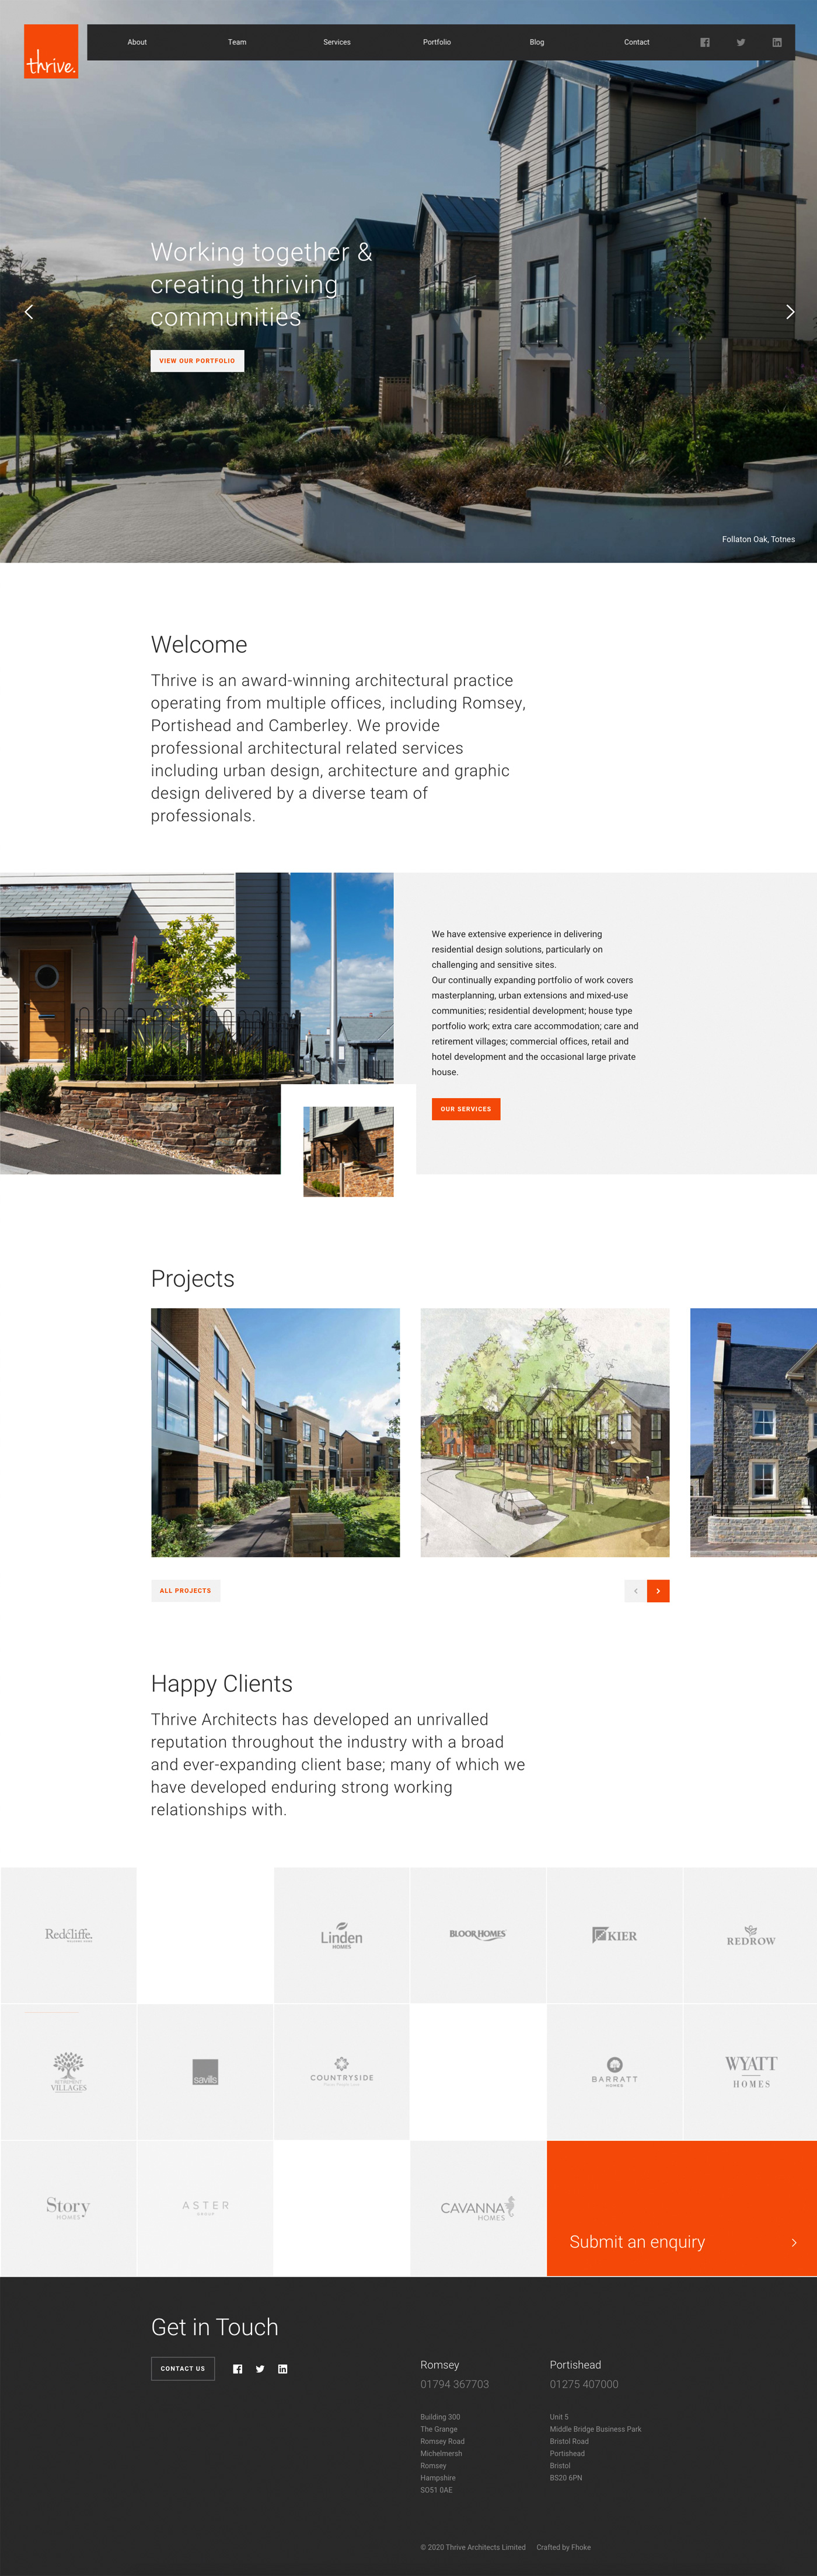 Fhoke Design Thrive Architects Website